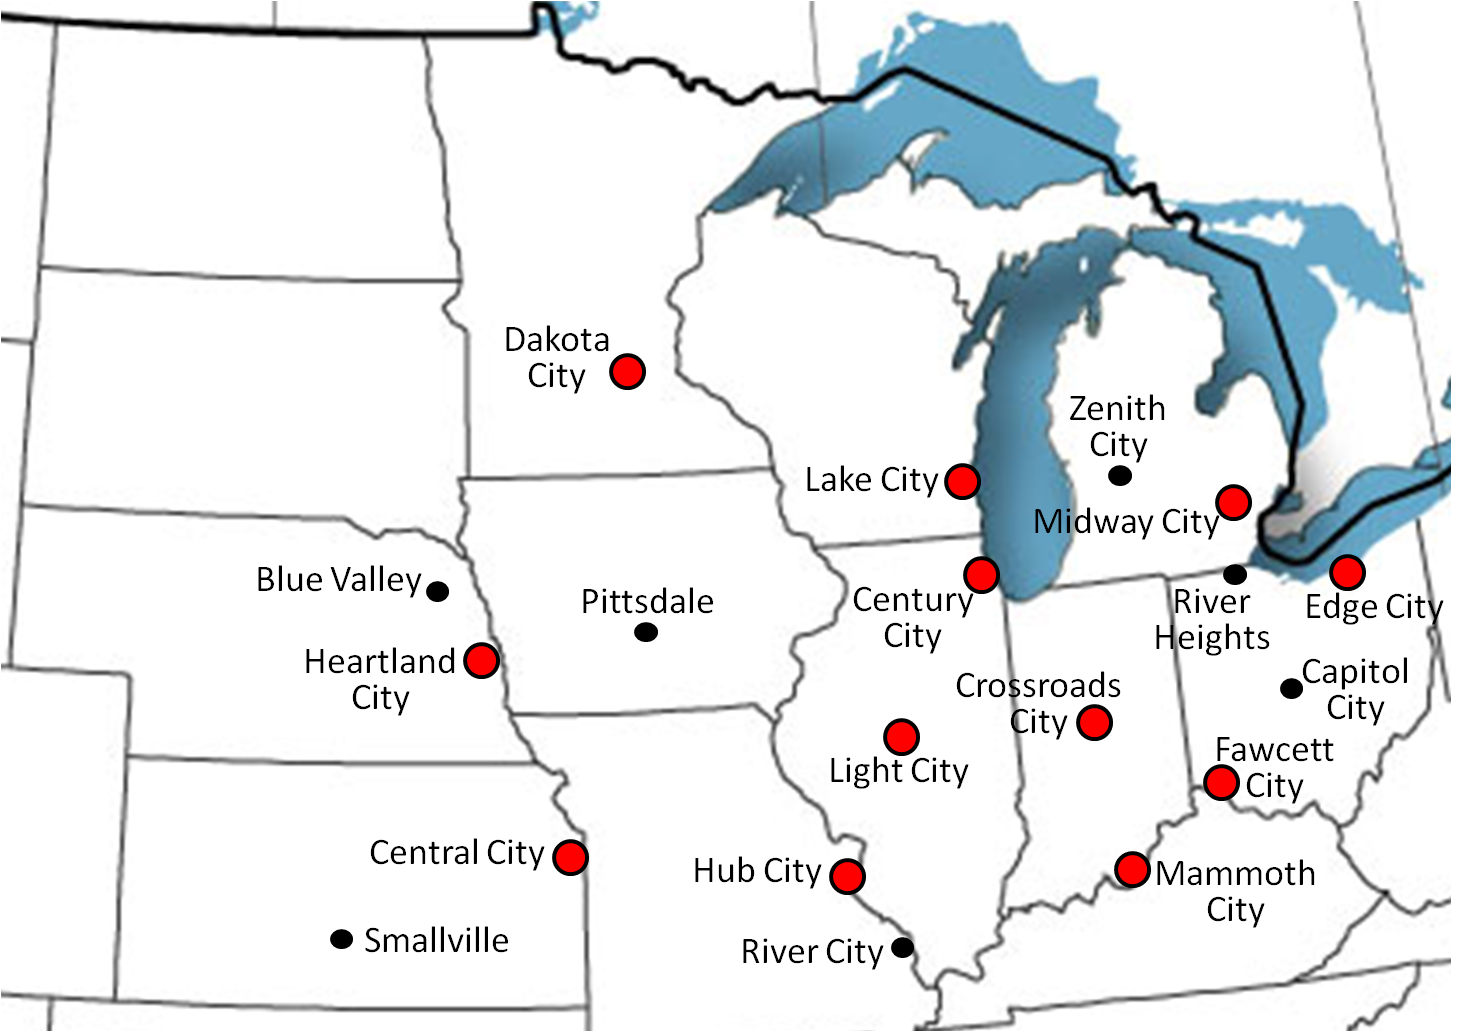 Alien Robot Zombies Atlas Of Fictional Cities In The United States - Us map midwest states